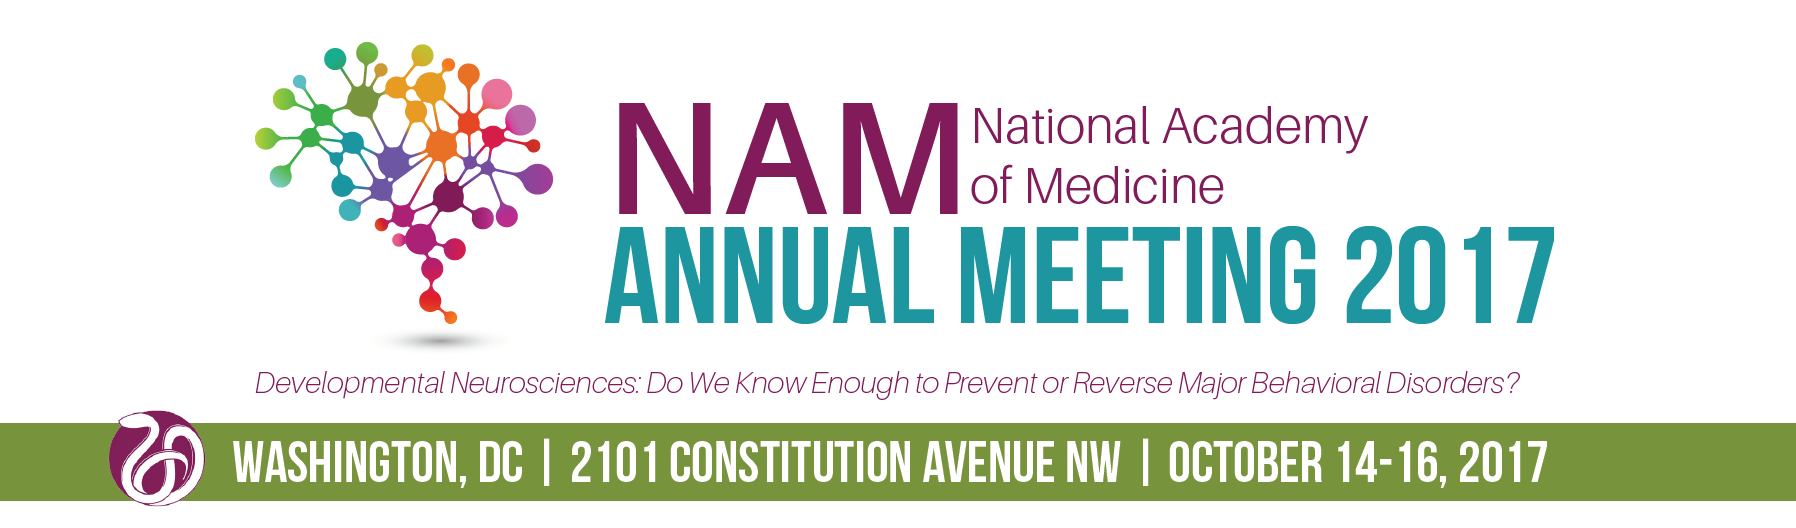 NAM 2017 Annual Meeting Registration